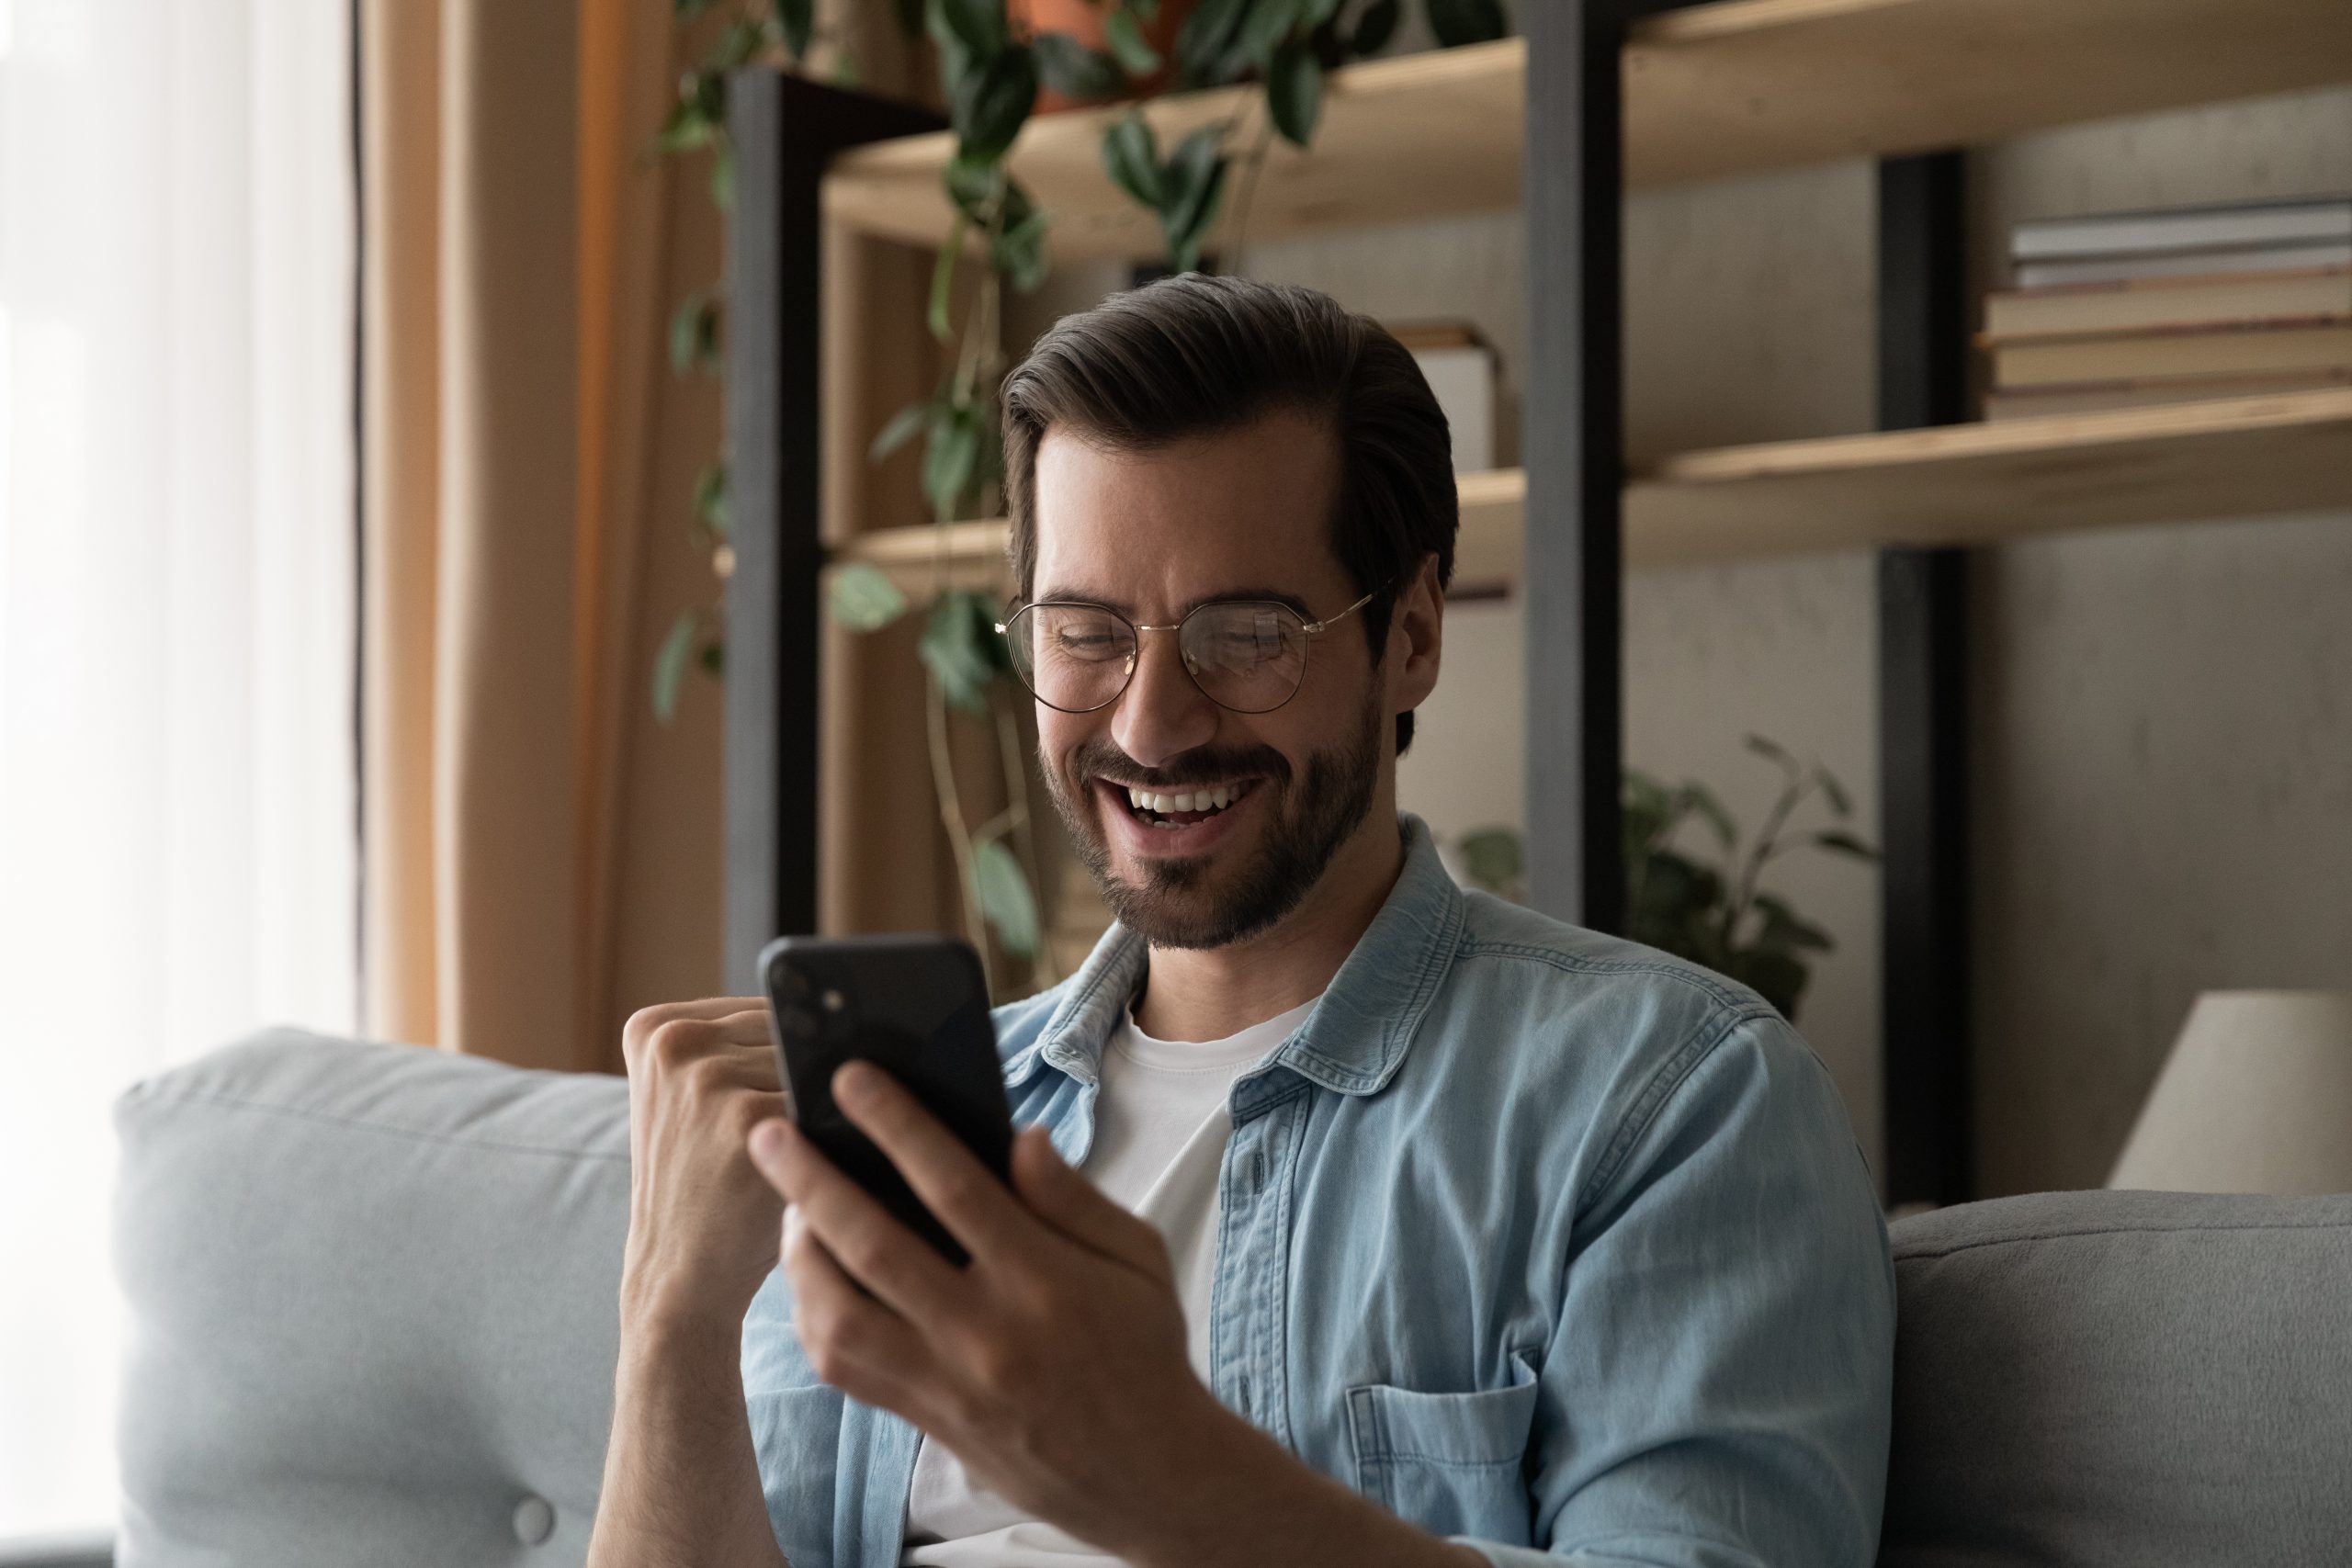 overjoyed man with glasses who gets phone job interview request